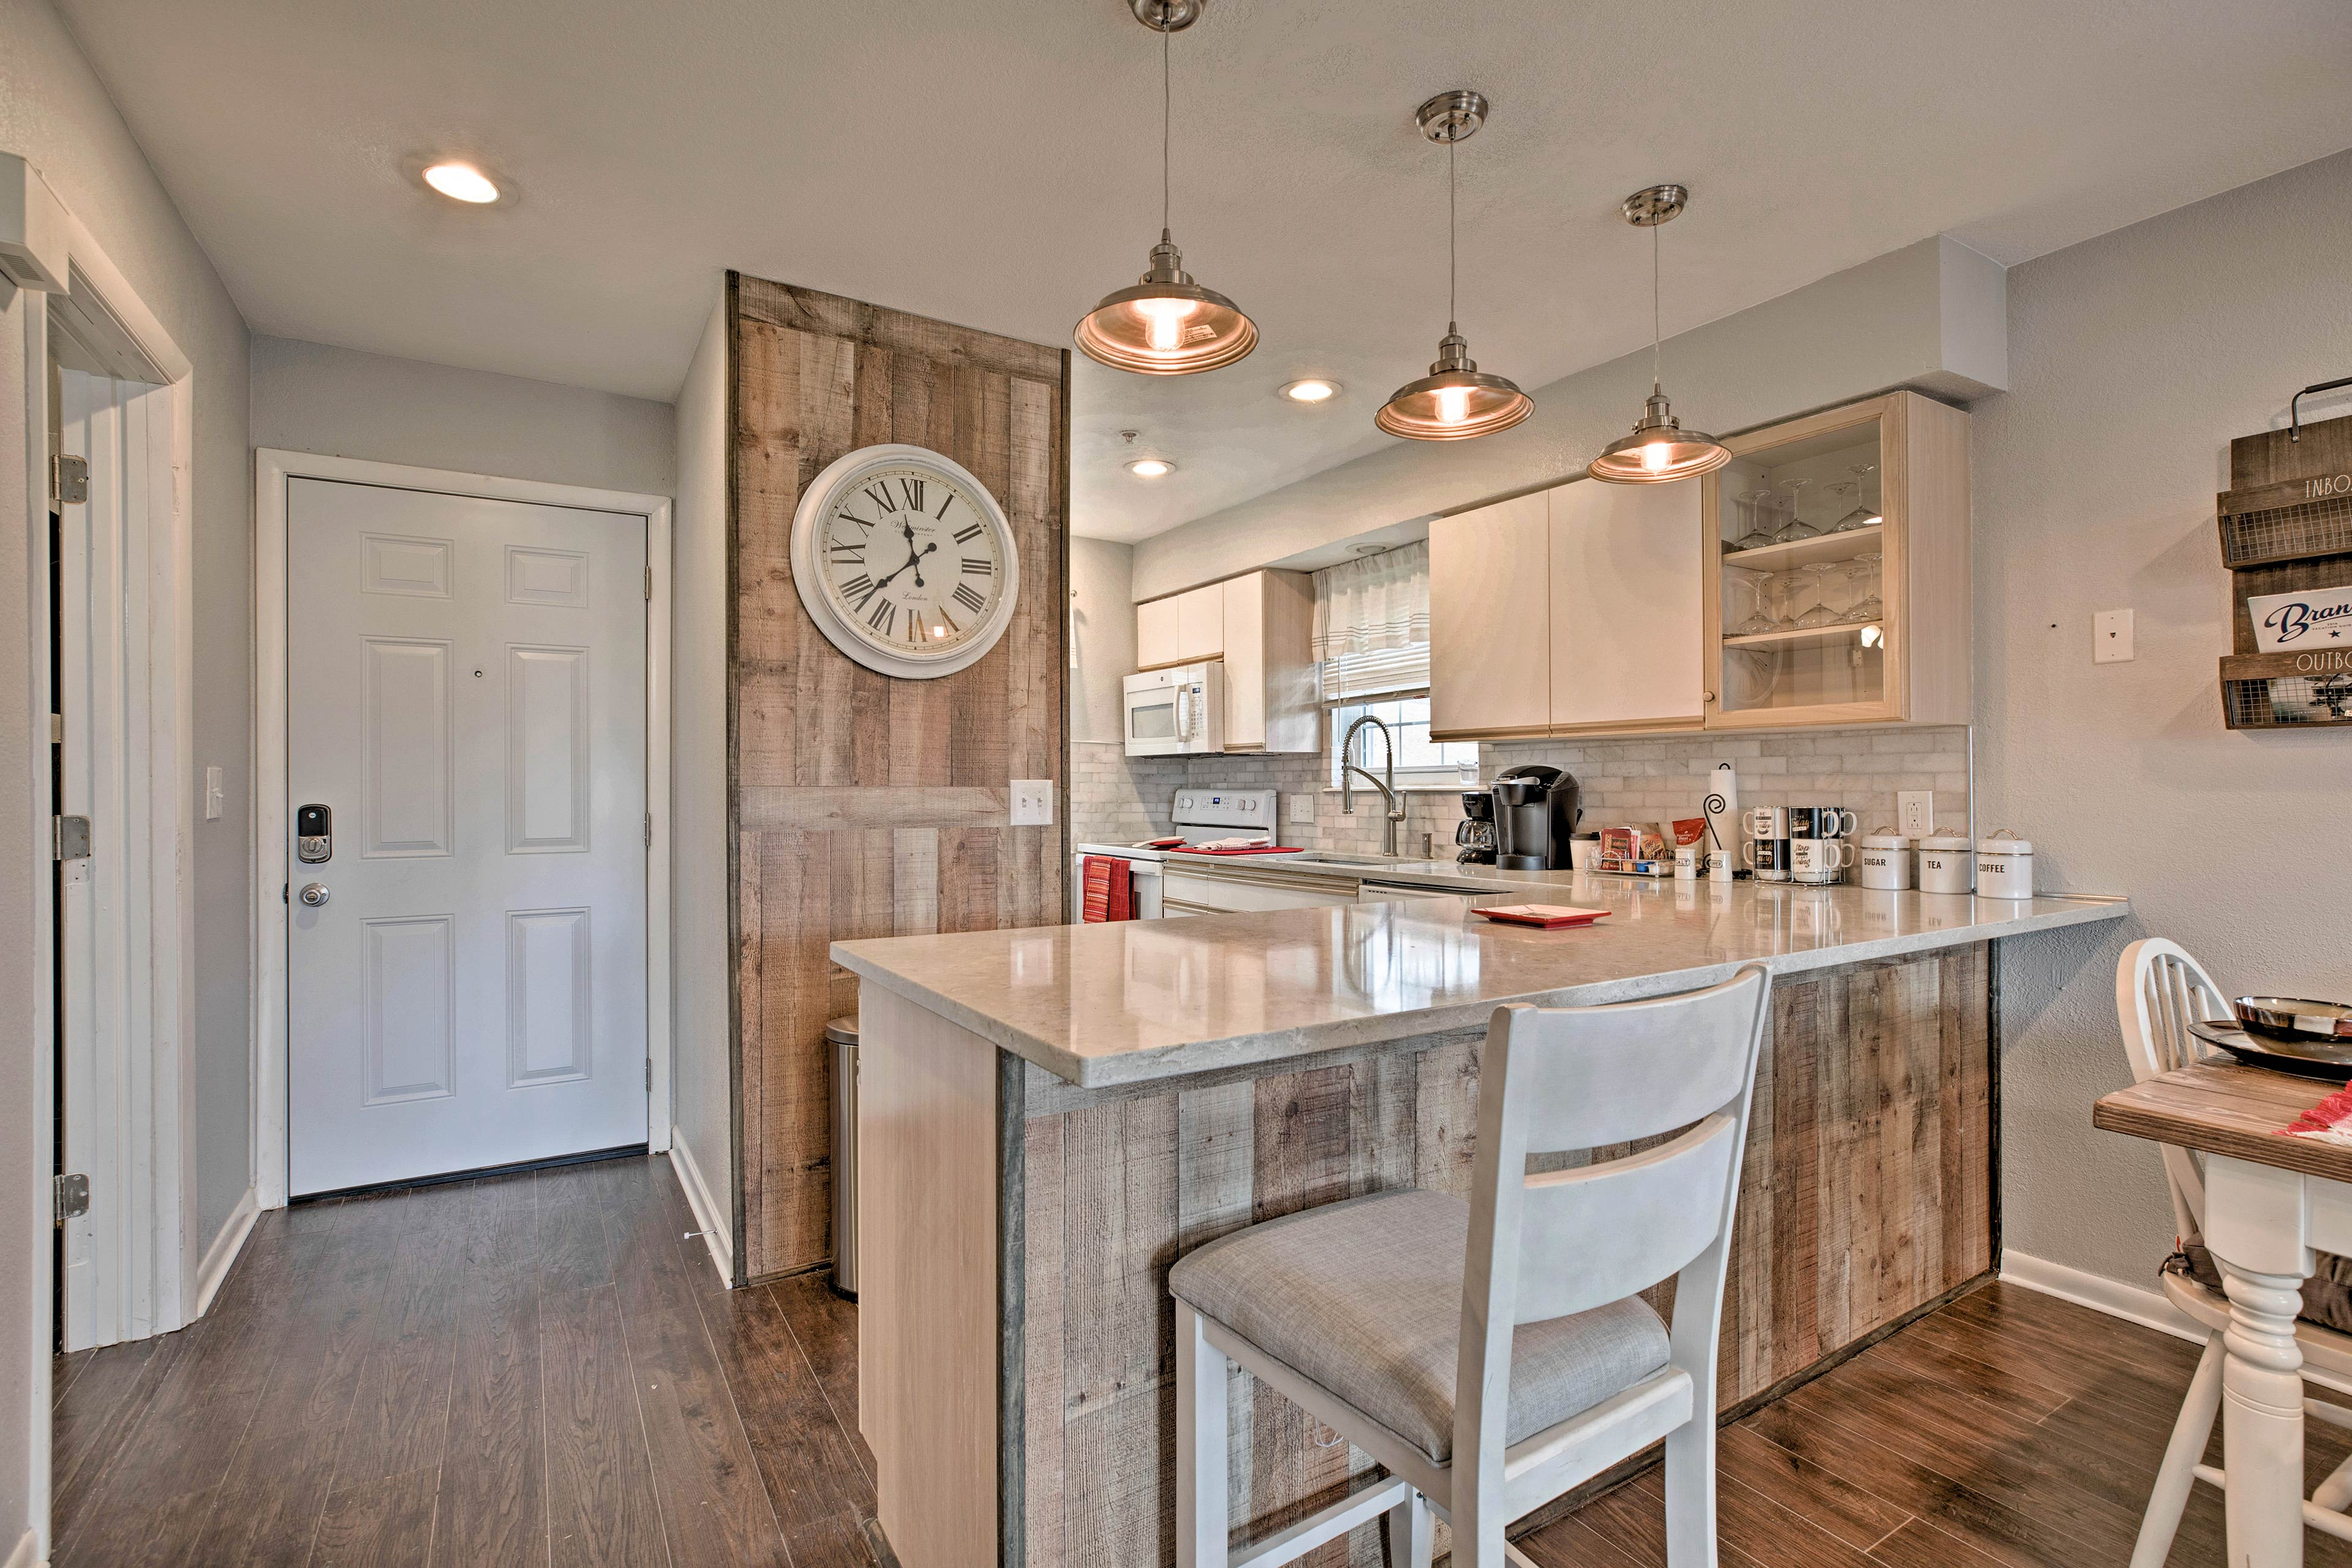 This newly remodeled kitchen features new countertops and tile.